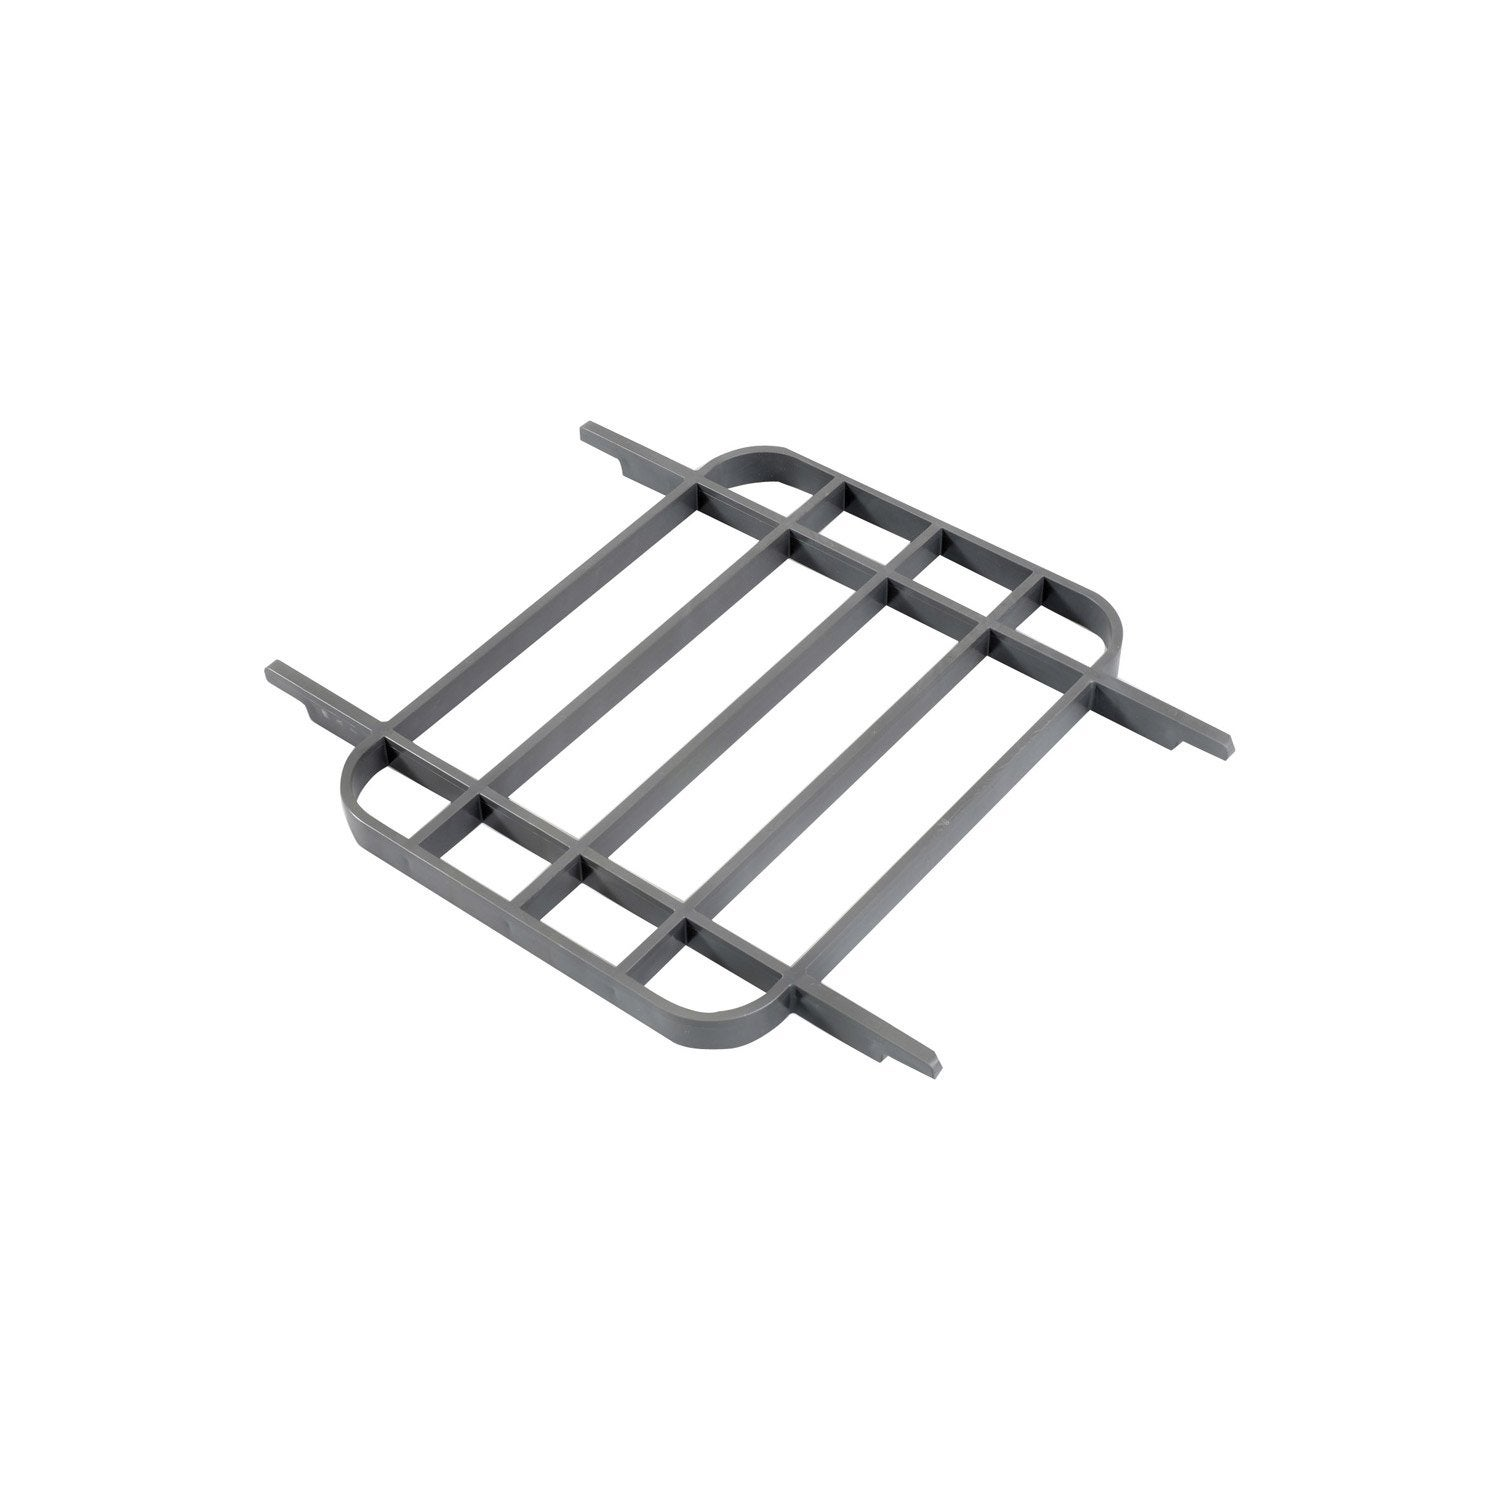 Grille pour bac laver blanche leroy merlin - Bac a sable leroy merlin ...